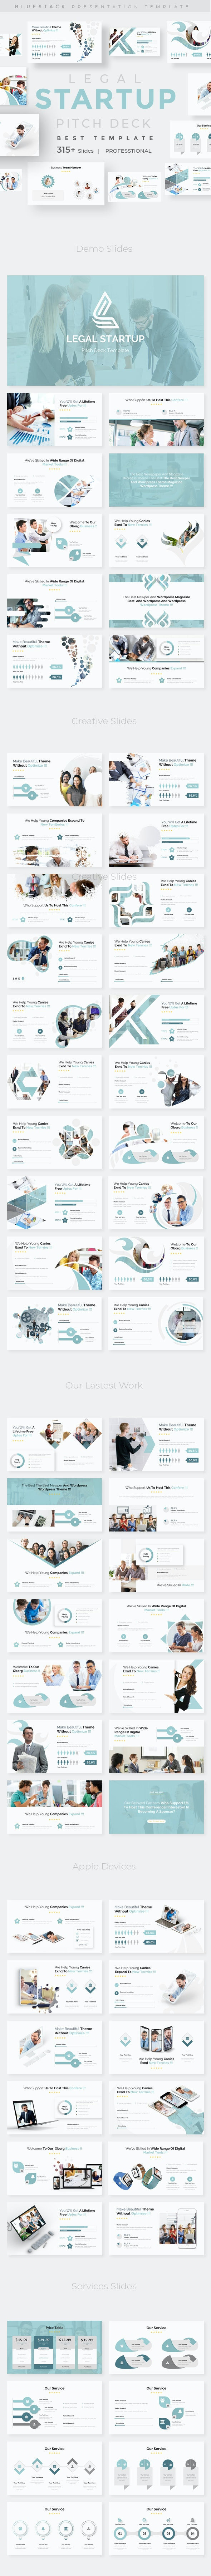 Legal Startup Pitch Deck Powerpoint Template - Business PowerPoint Templates